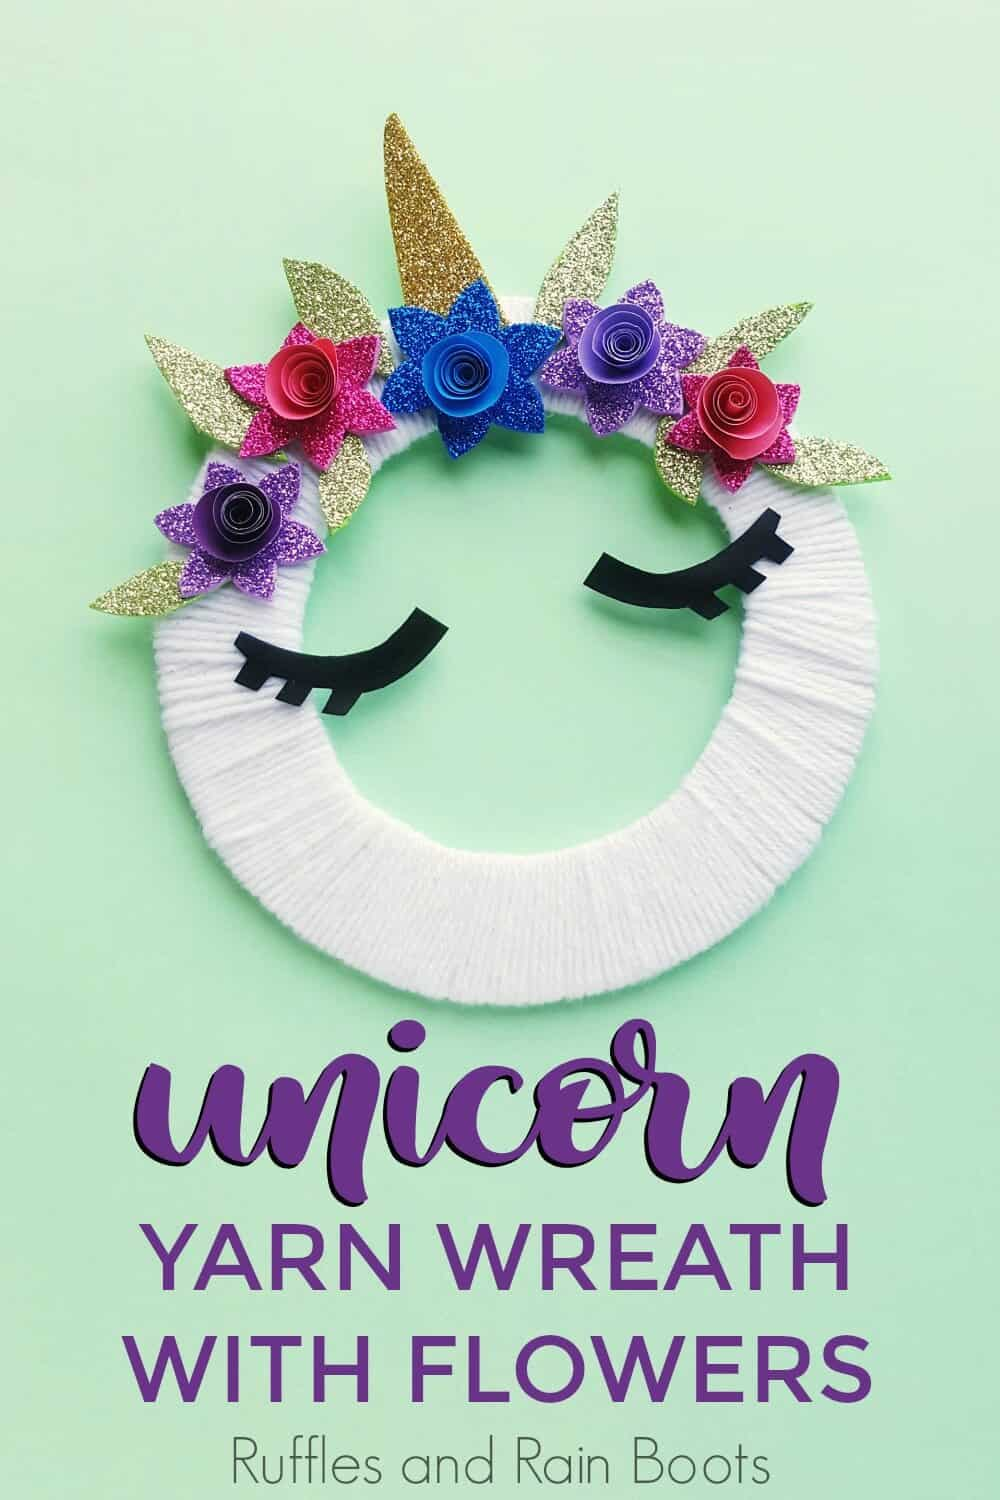 unicorn wreath unicorn craft for kids on a teal background with text which reads unicorn yarn wreath with flowers